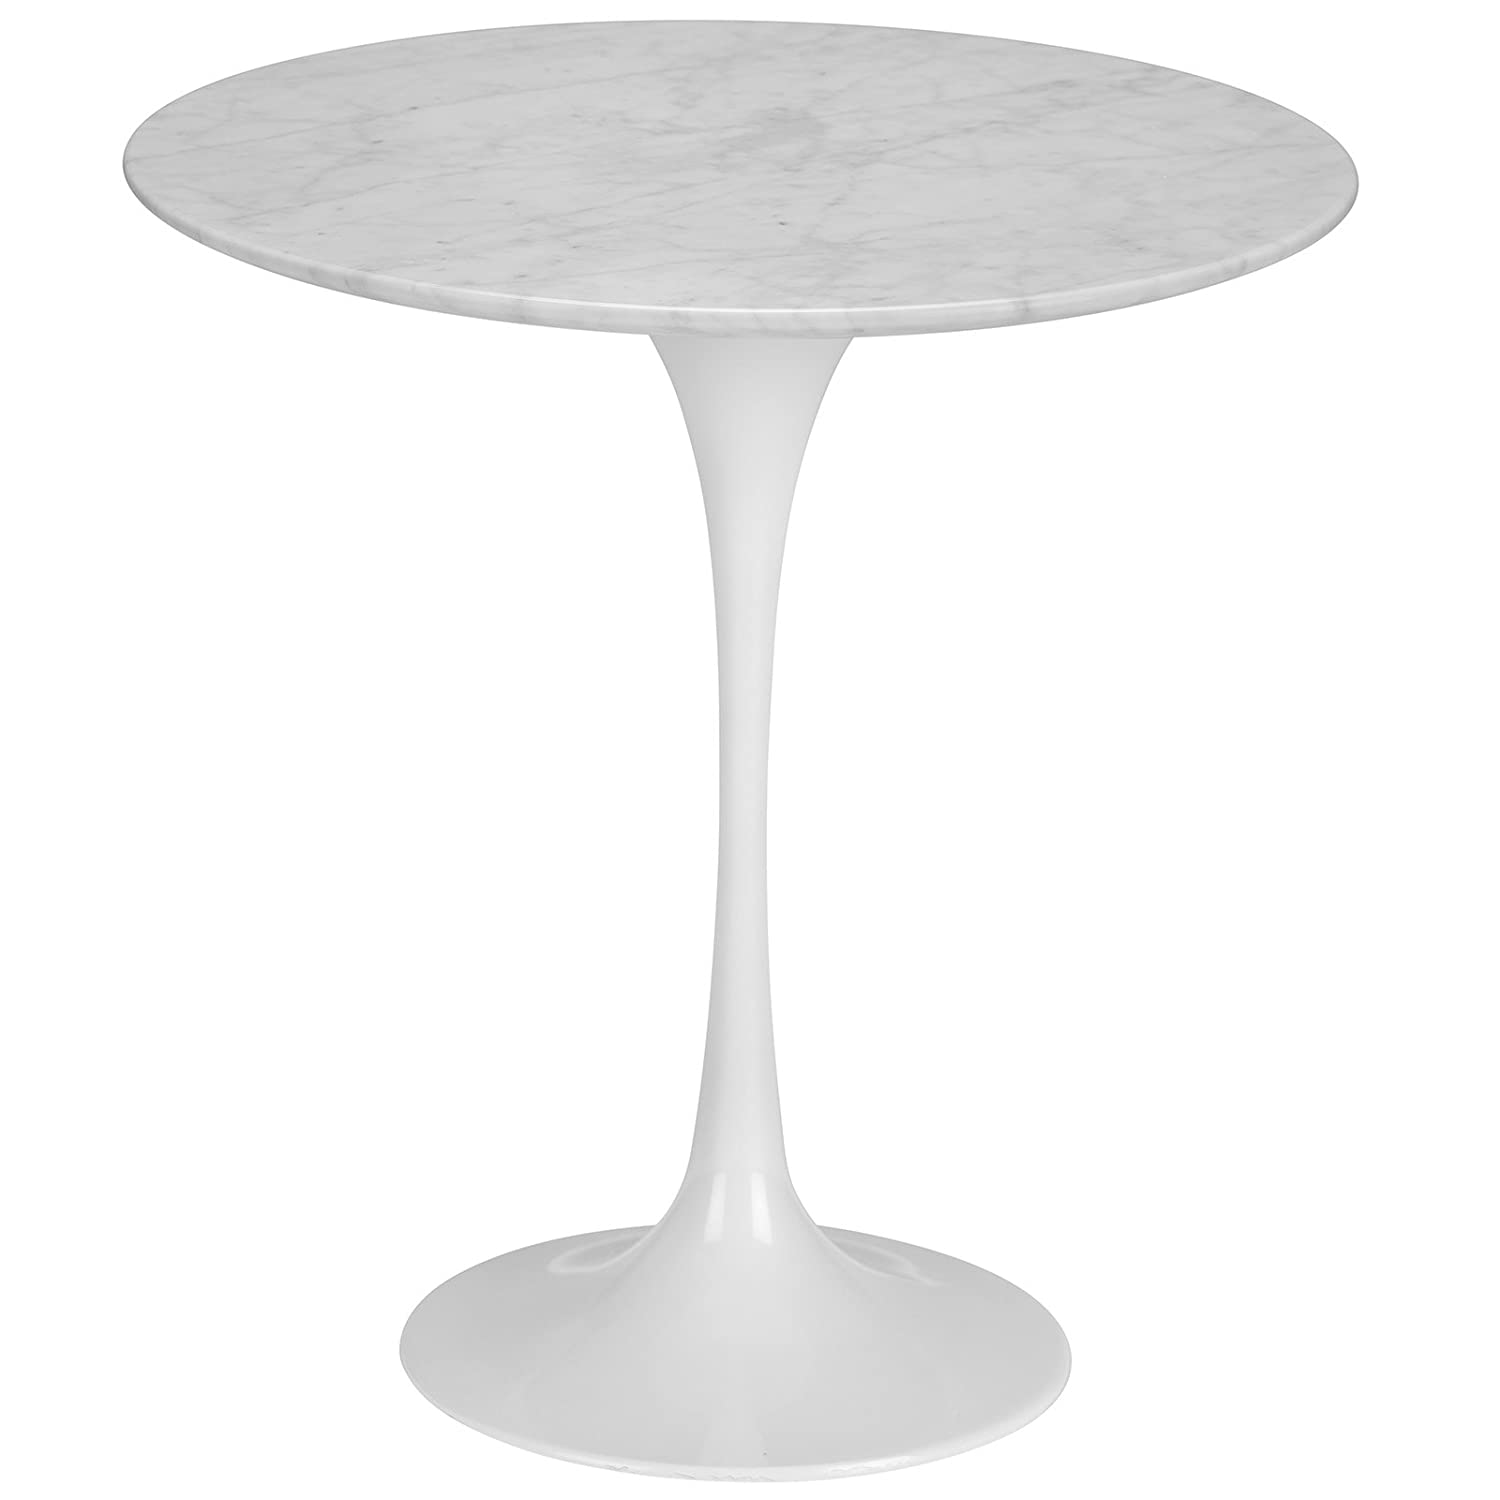 Amazoncom Poly And Bark Daisy Marble Side Table In White Base - Saarinen tulip table base only